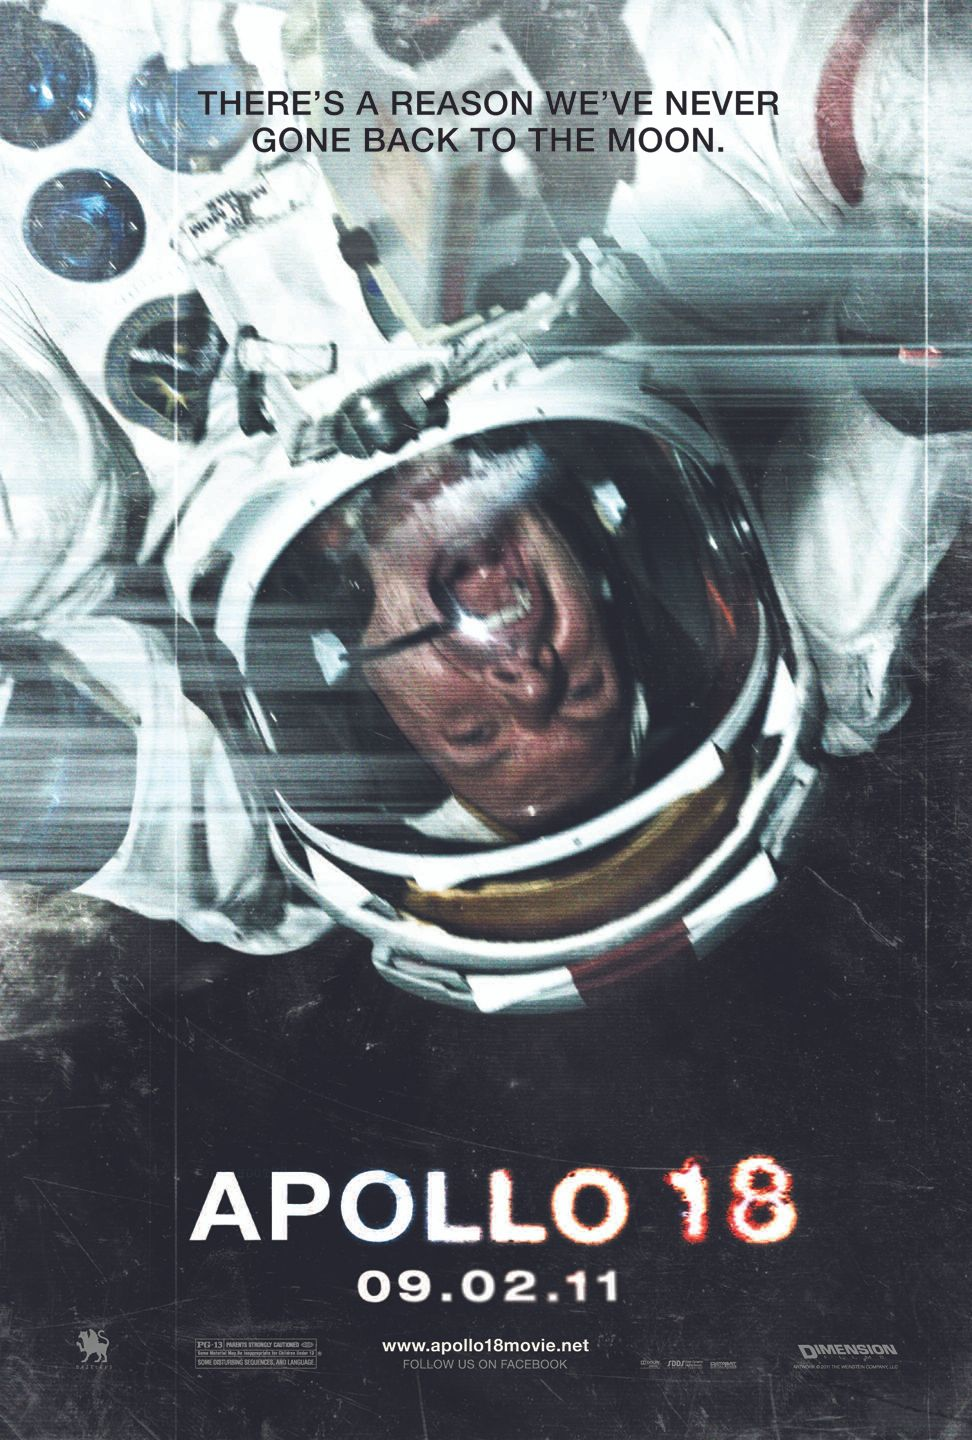 APOLLO 18 Poster; RISE OF THE PLANET OF THE APES Poster ...